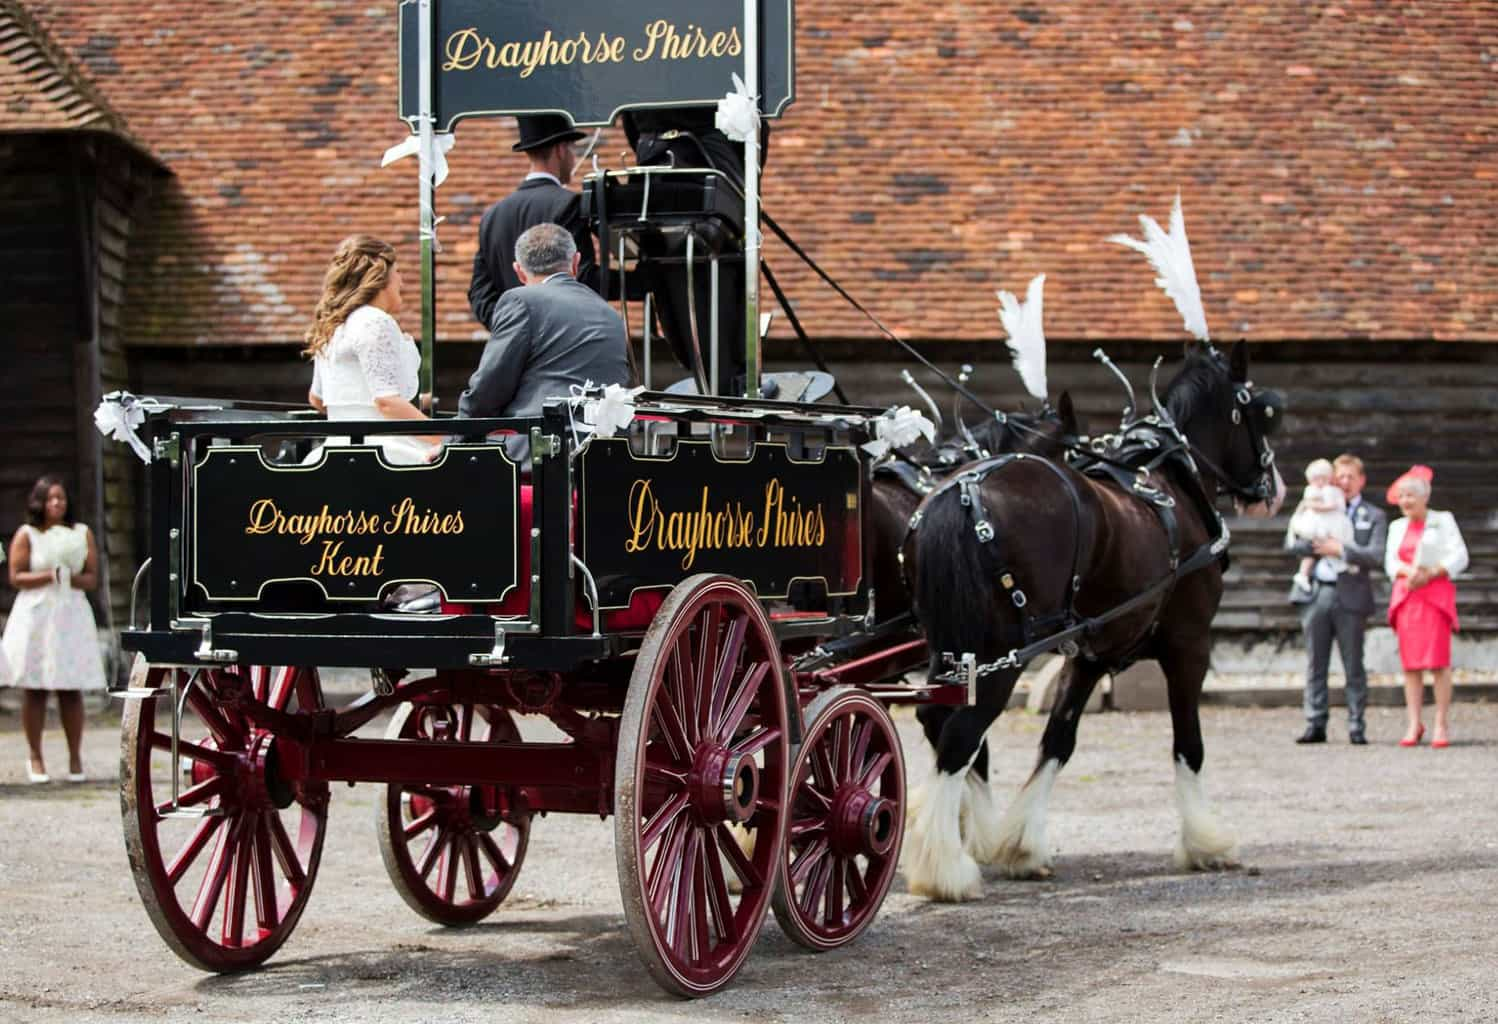 Brewery Dray-Wedding-Drayhorse-Carriages Hire, Sale, Brisbane, Gold Coast